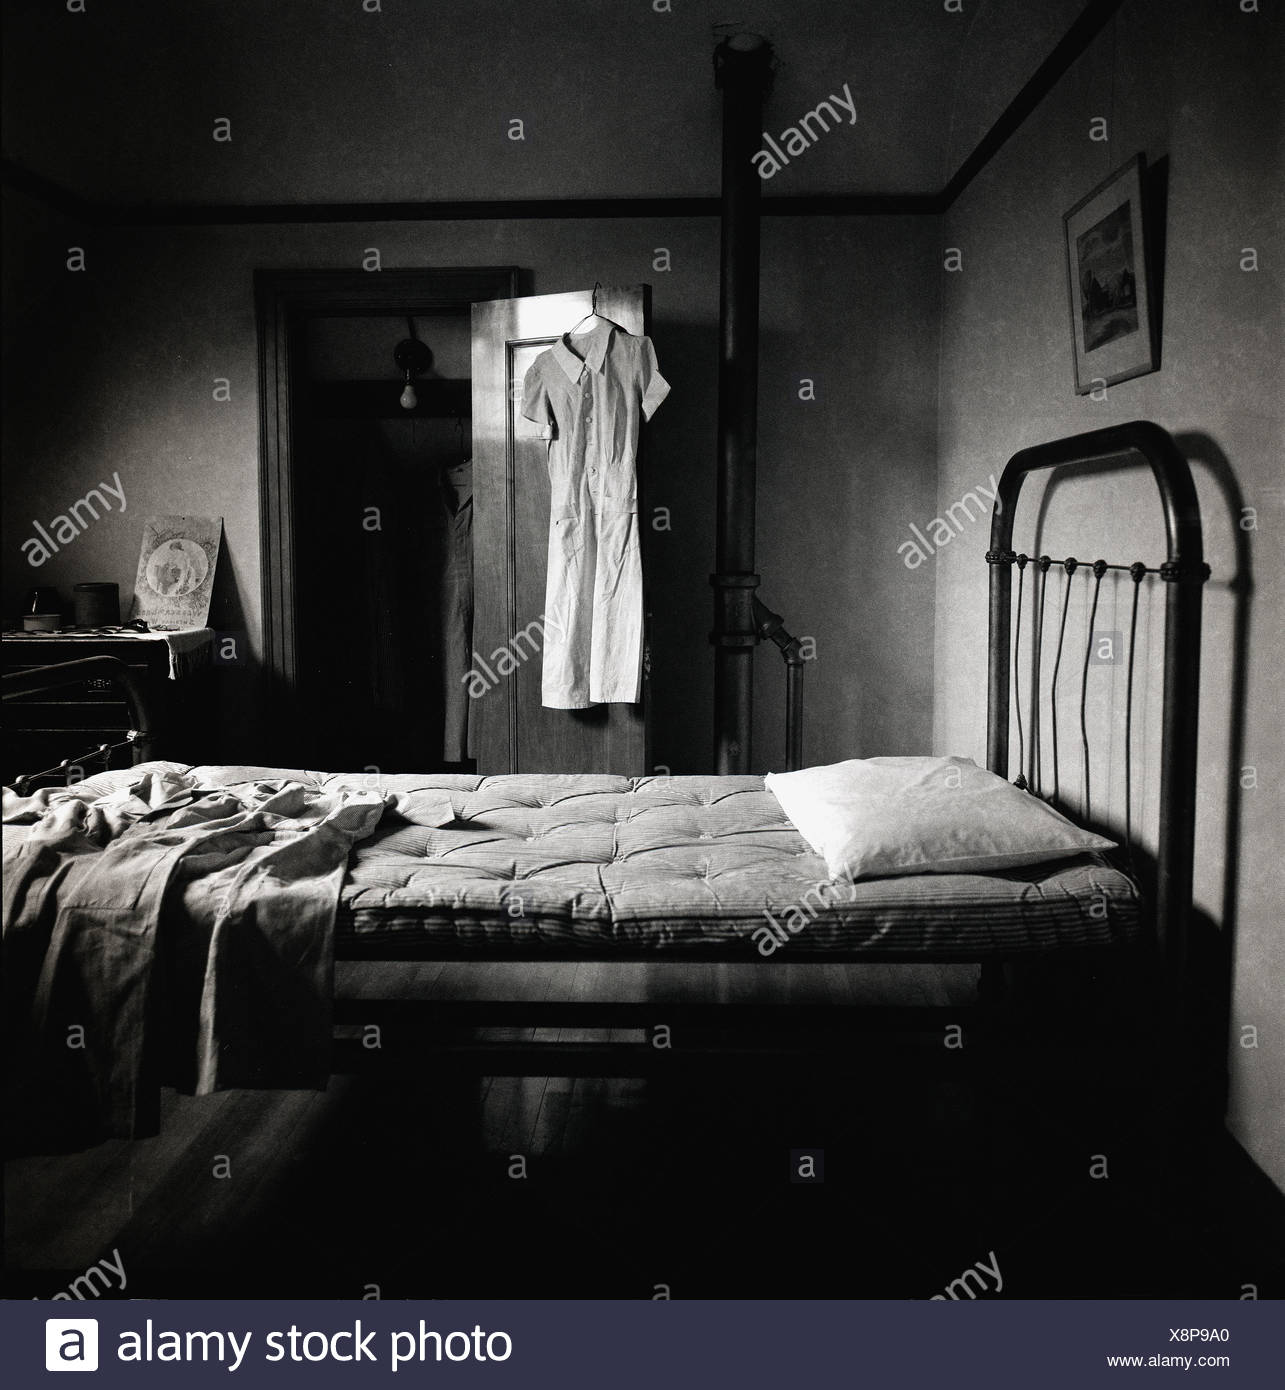 An old fashioned bedroom Stock Photo: 280773416 - Alamy